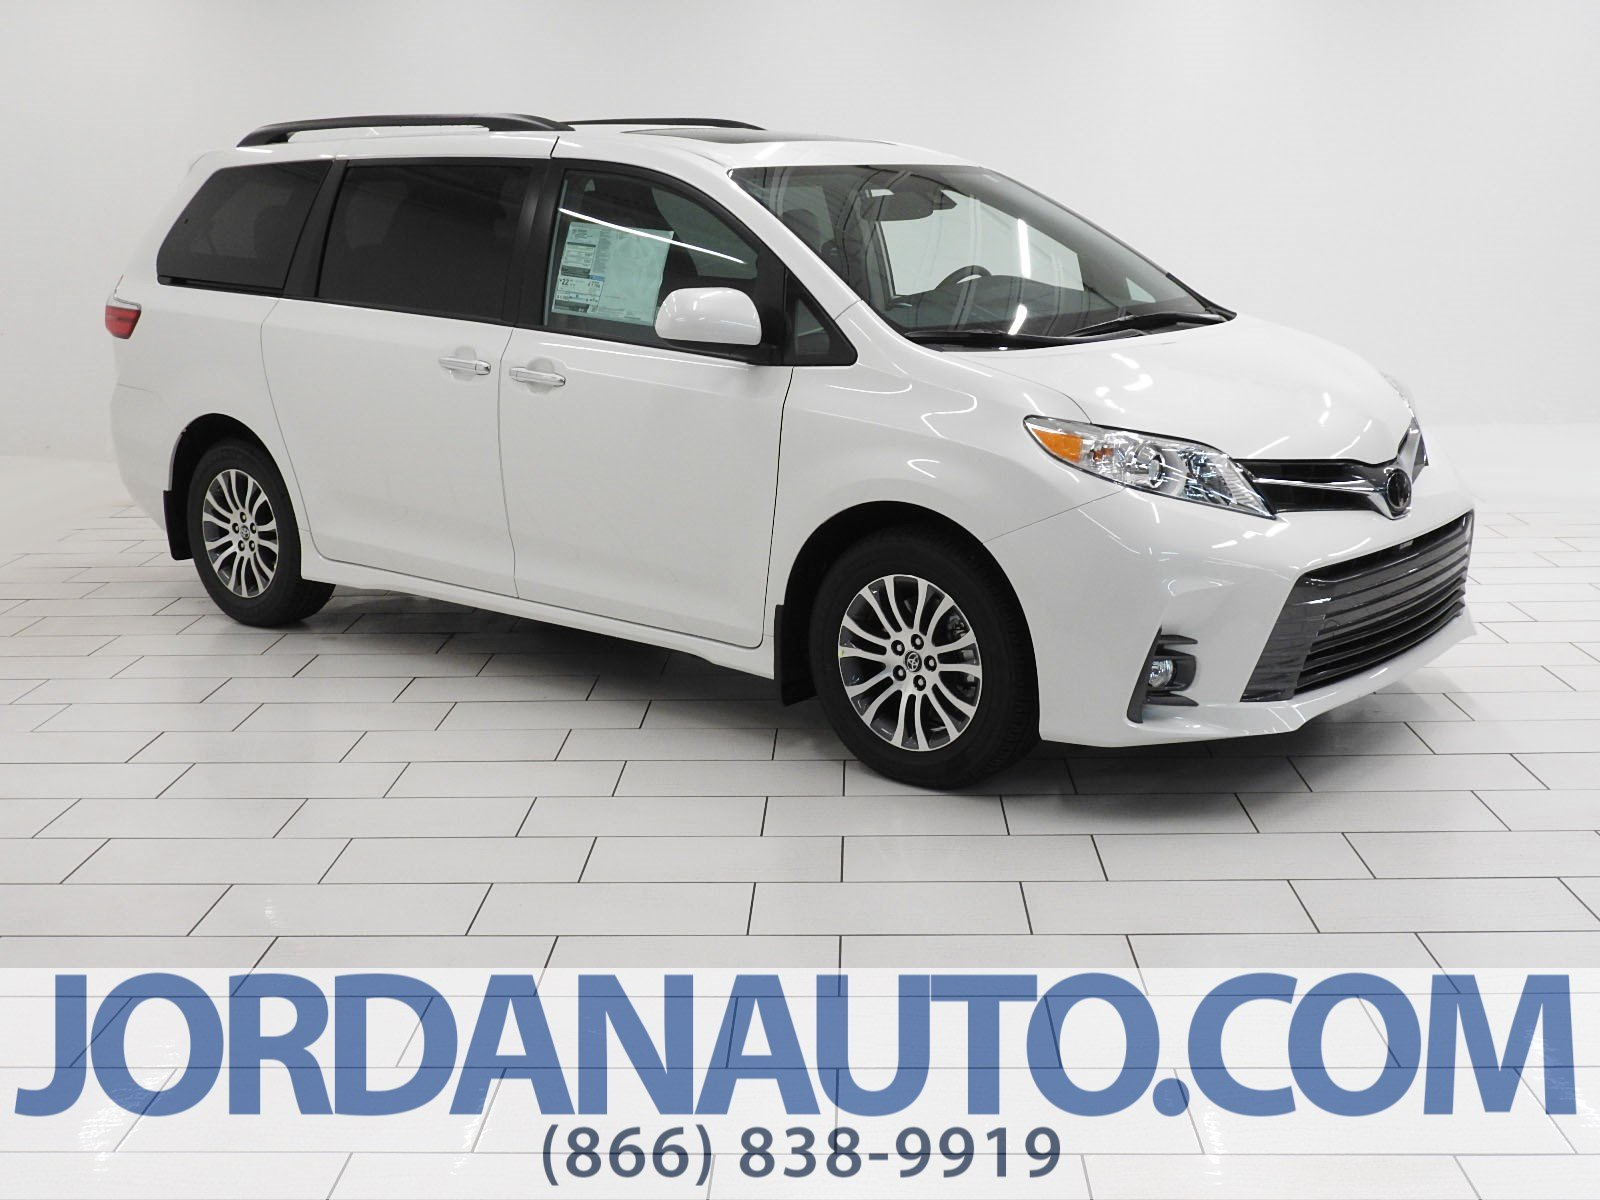 Toyota Sienna Service Manual: Rear shock absorber